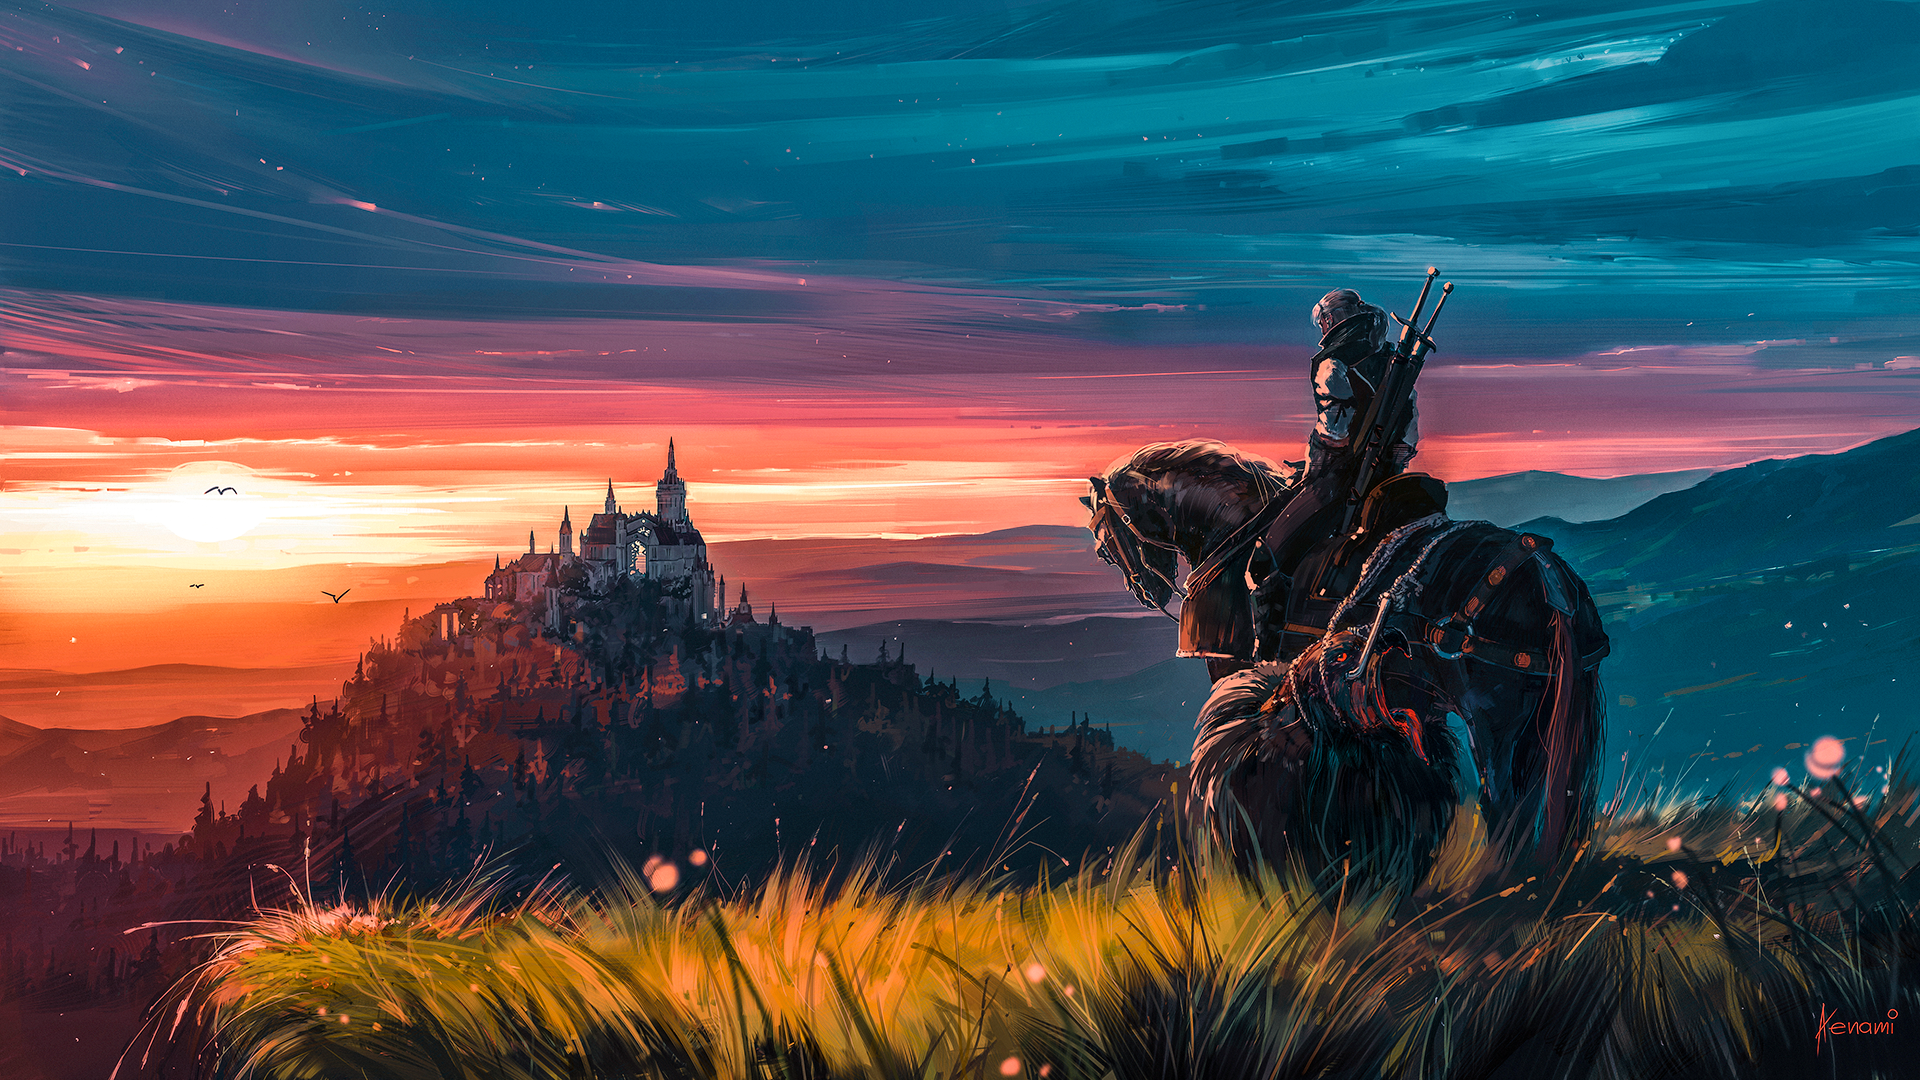 Beyond Hill and Dale (Witcher 3 Fan art) gaming